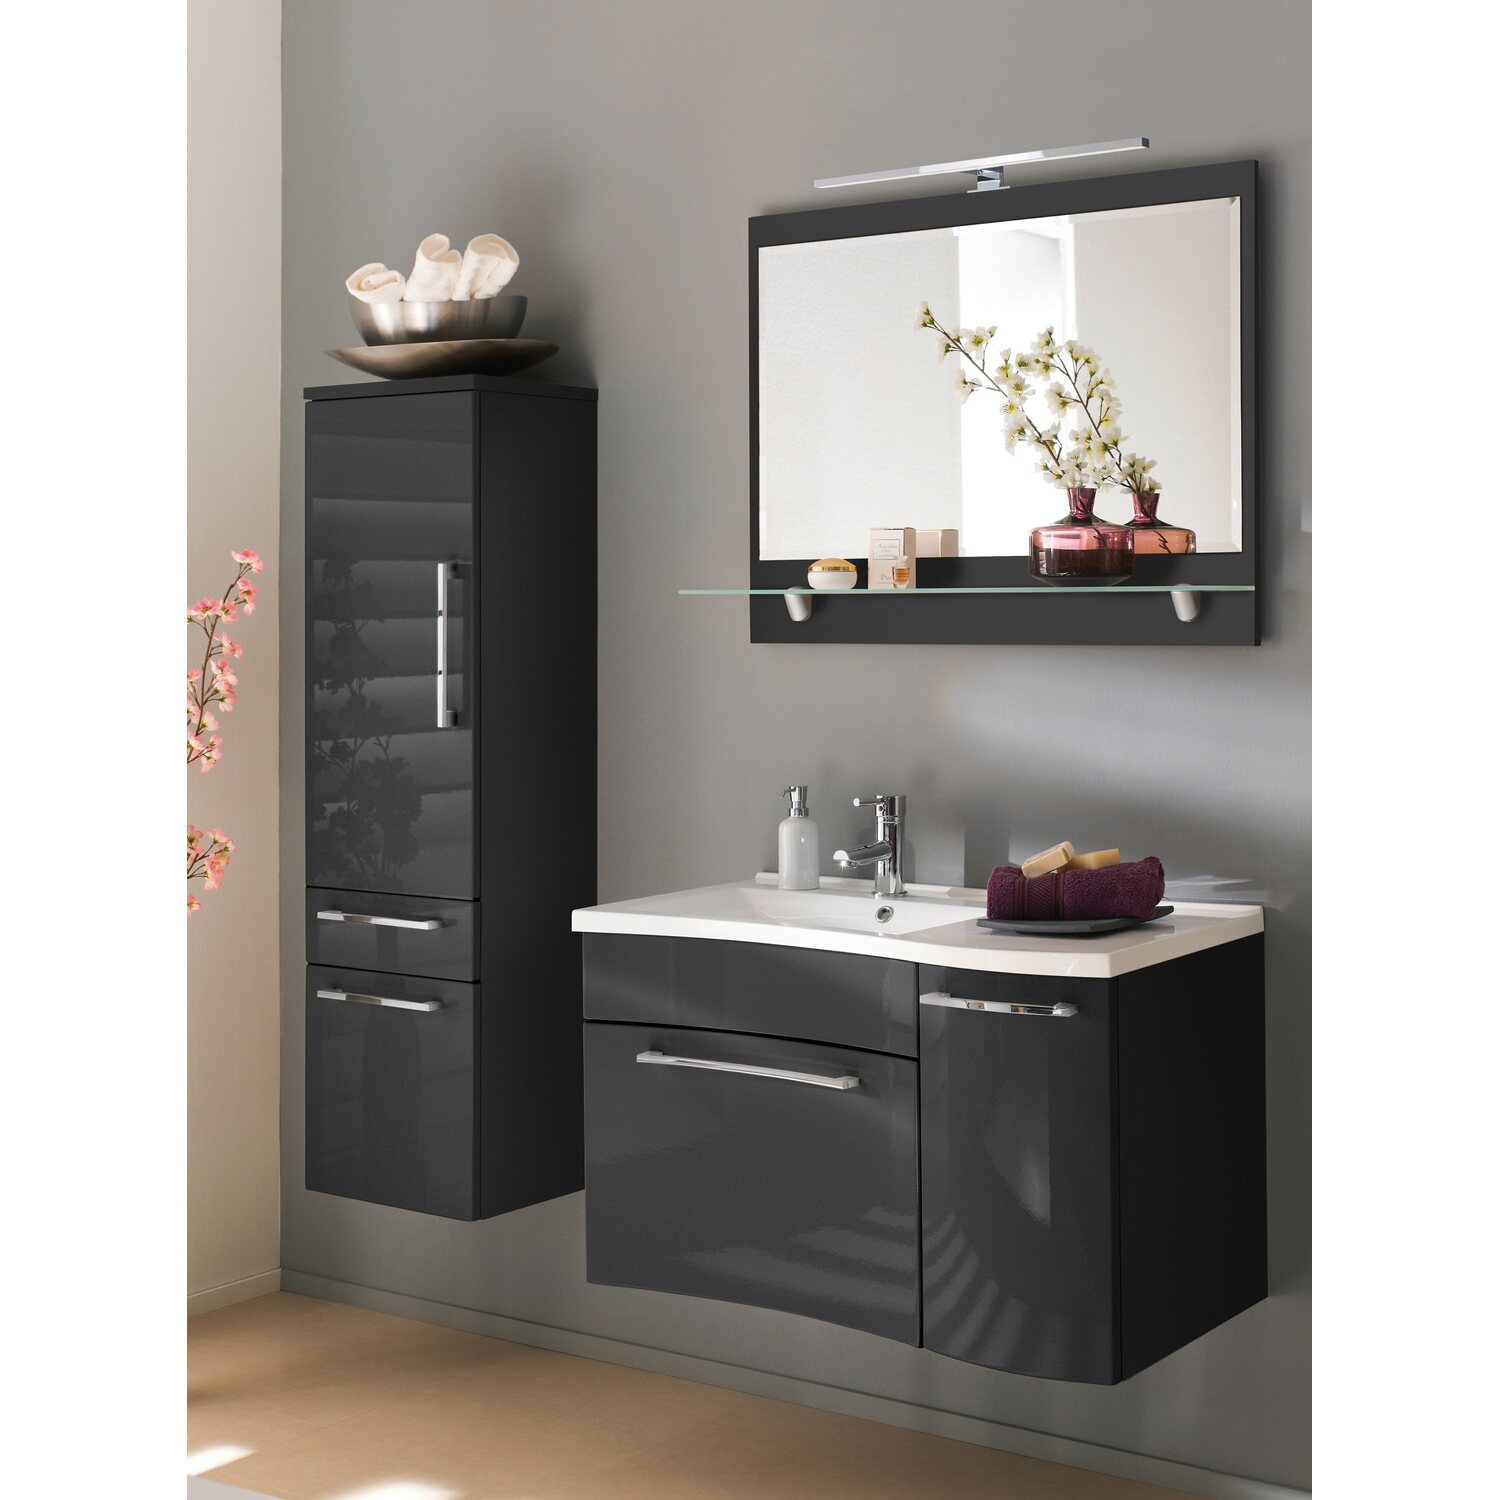 posseik badm bel set laonda anthrazit 4 teilig eek a kaufen bei obi. Black Bedroom Furniture Sets. Home Design Ideas